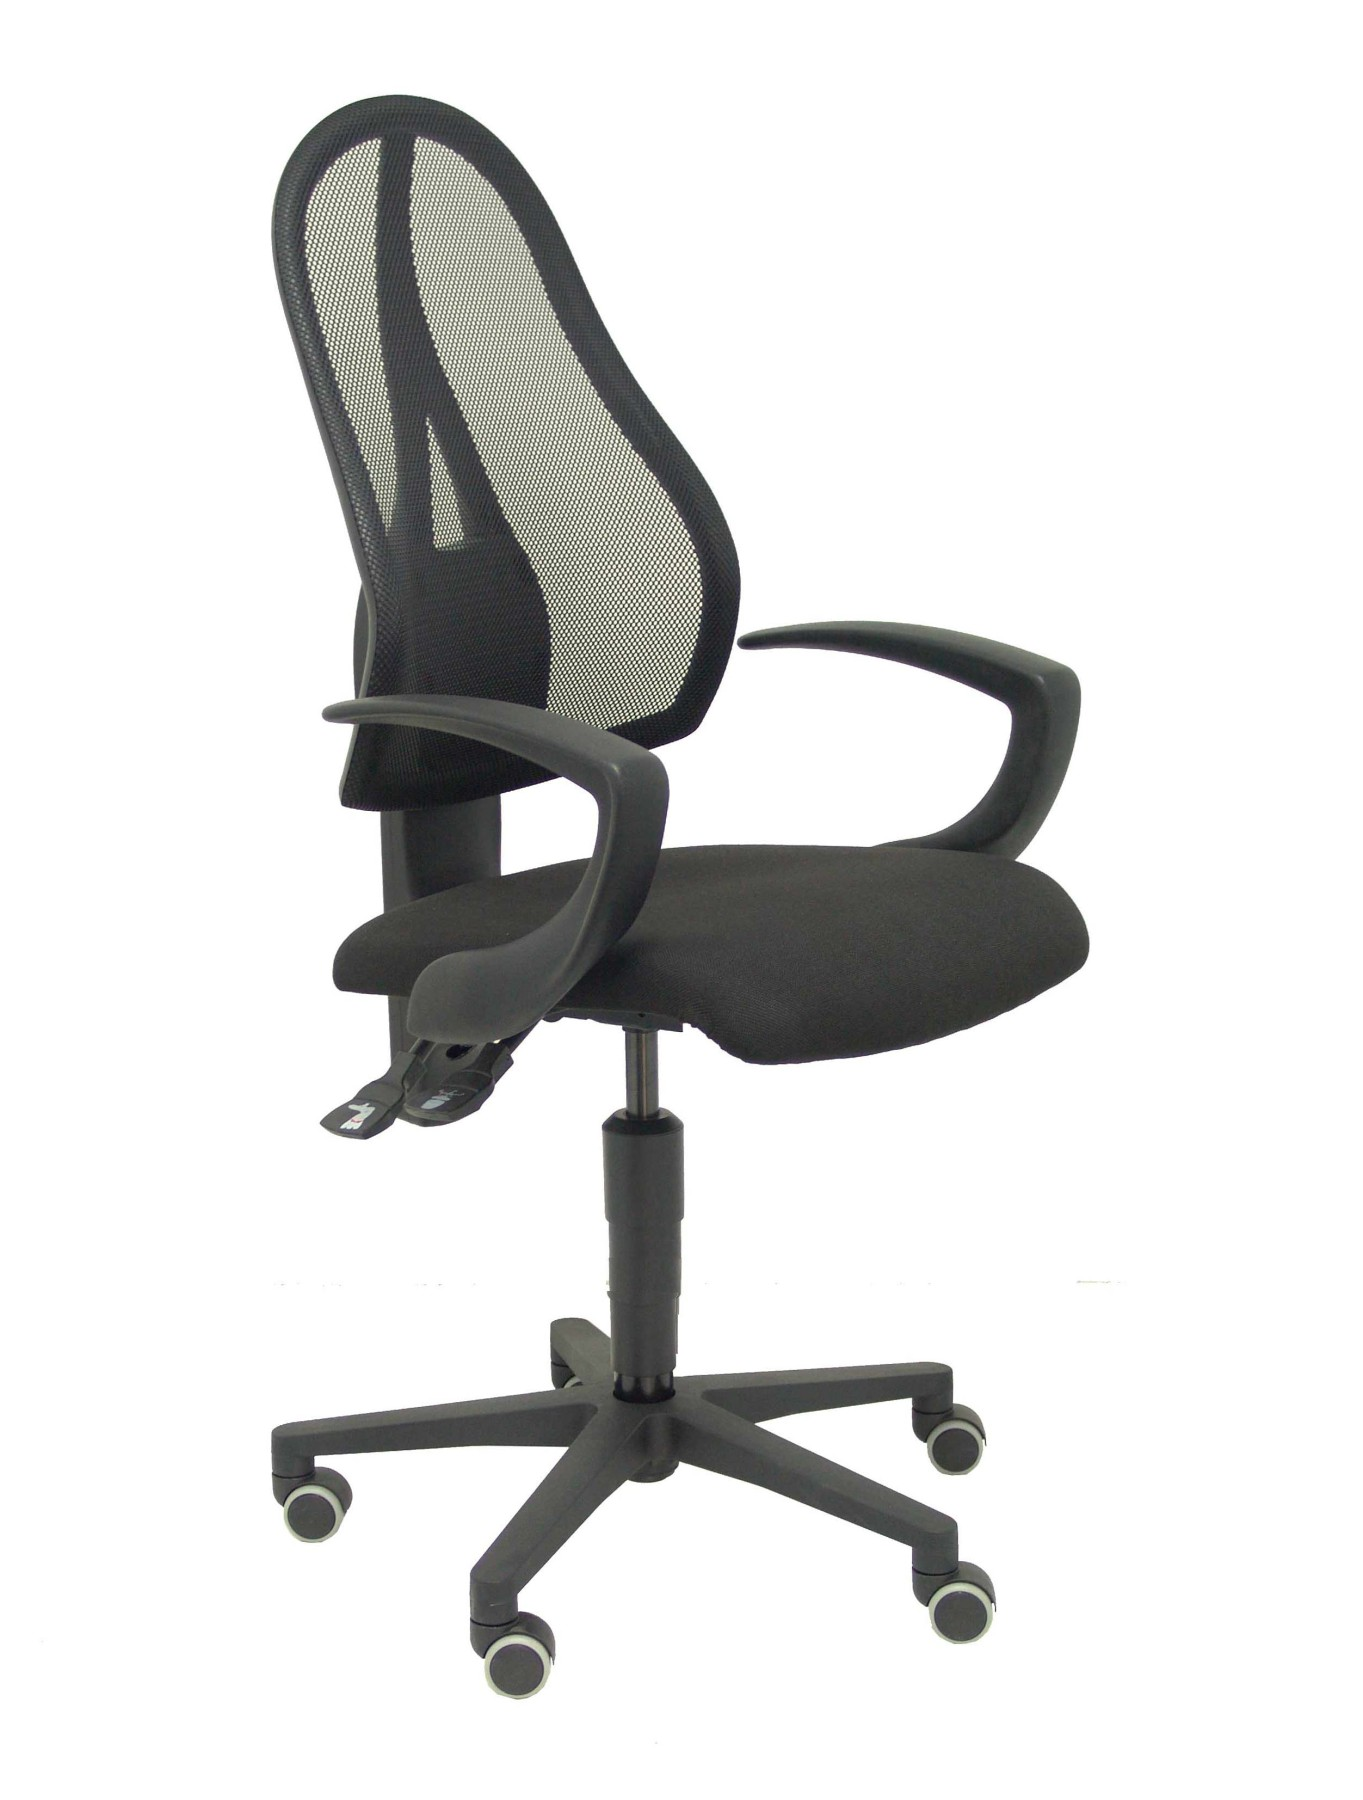 Ergonomic Office Chair Mechanism Permanent Contact, Fixed Arms-breathable Mesh Backrest In Colo